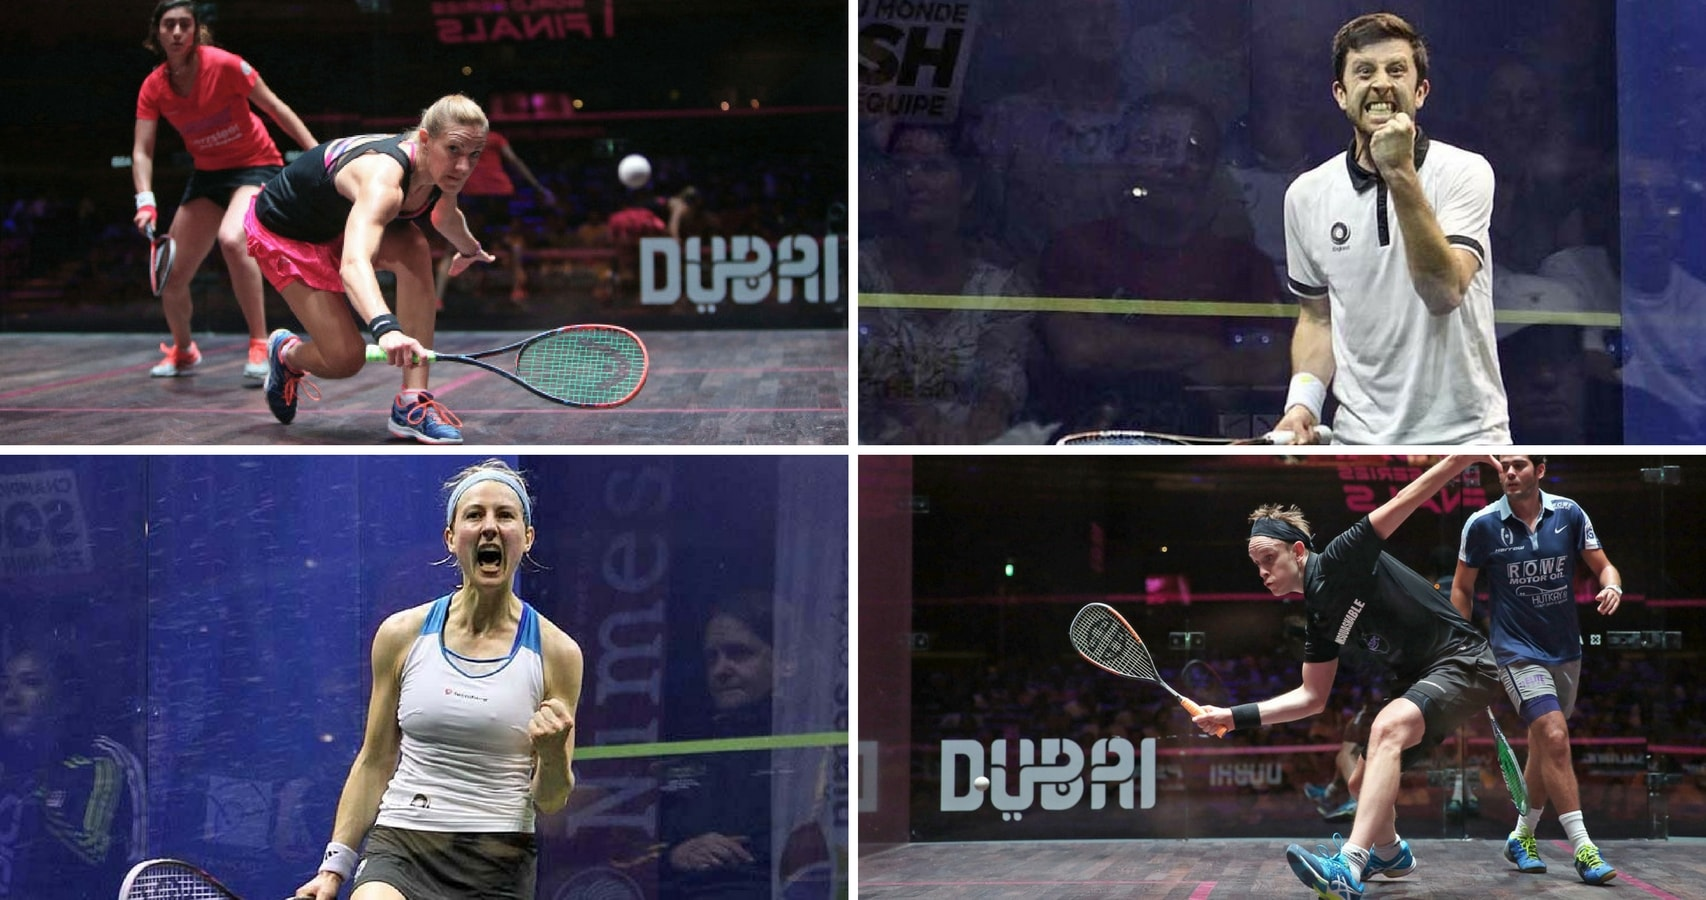 England Squash - WSF World Doubles Championships tickets on sale